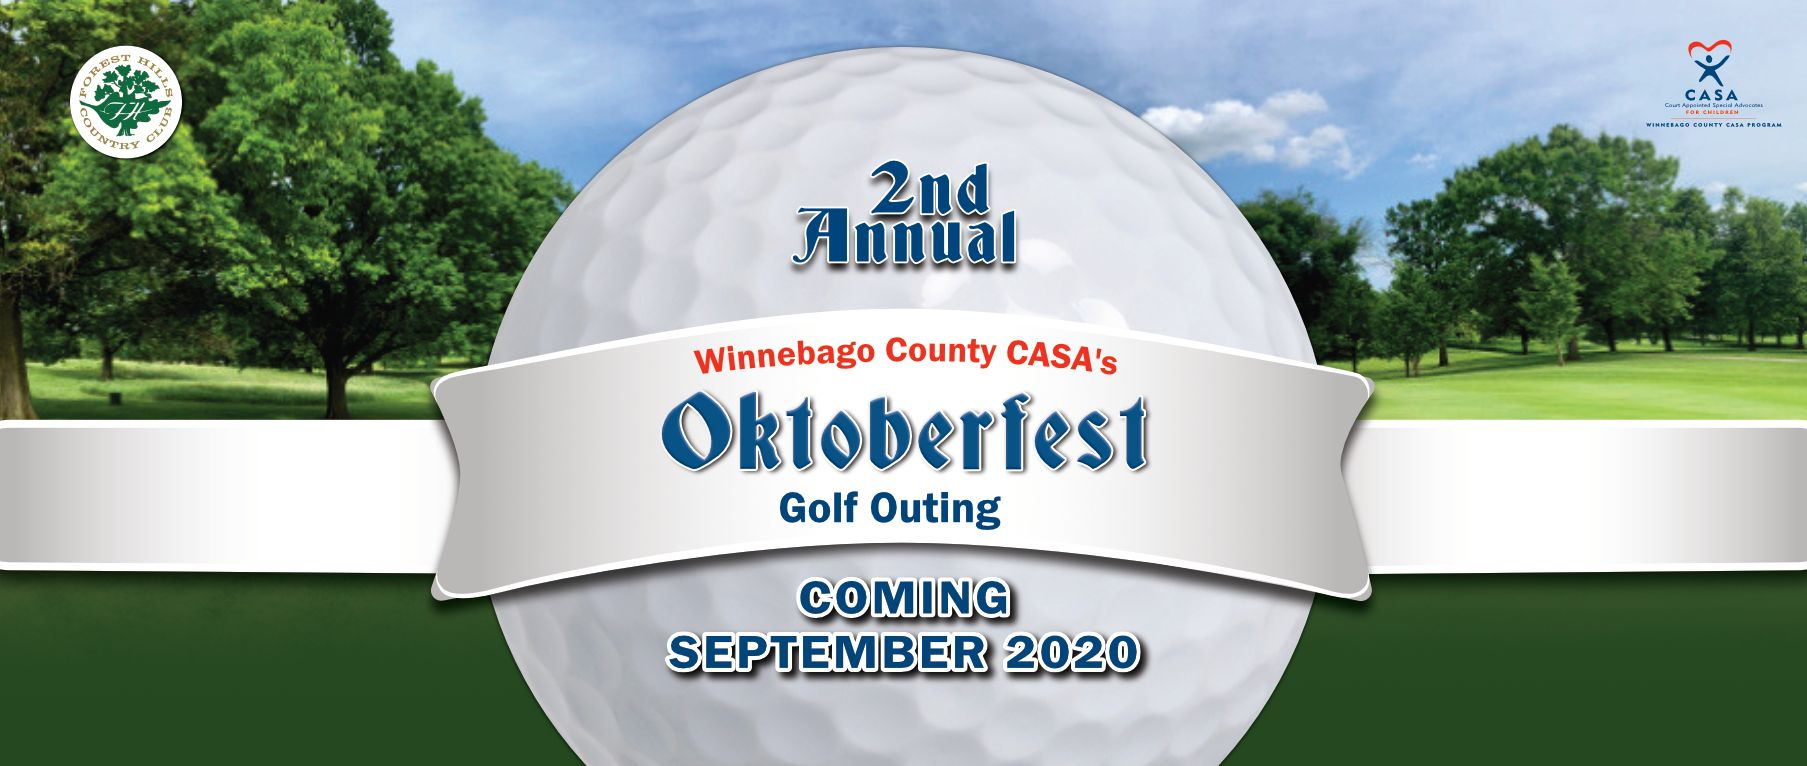 Oktoberfest Golf Outing